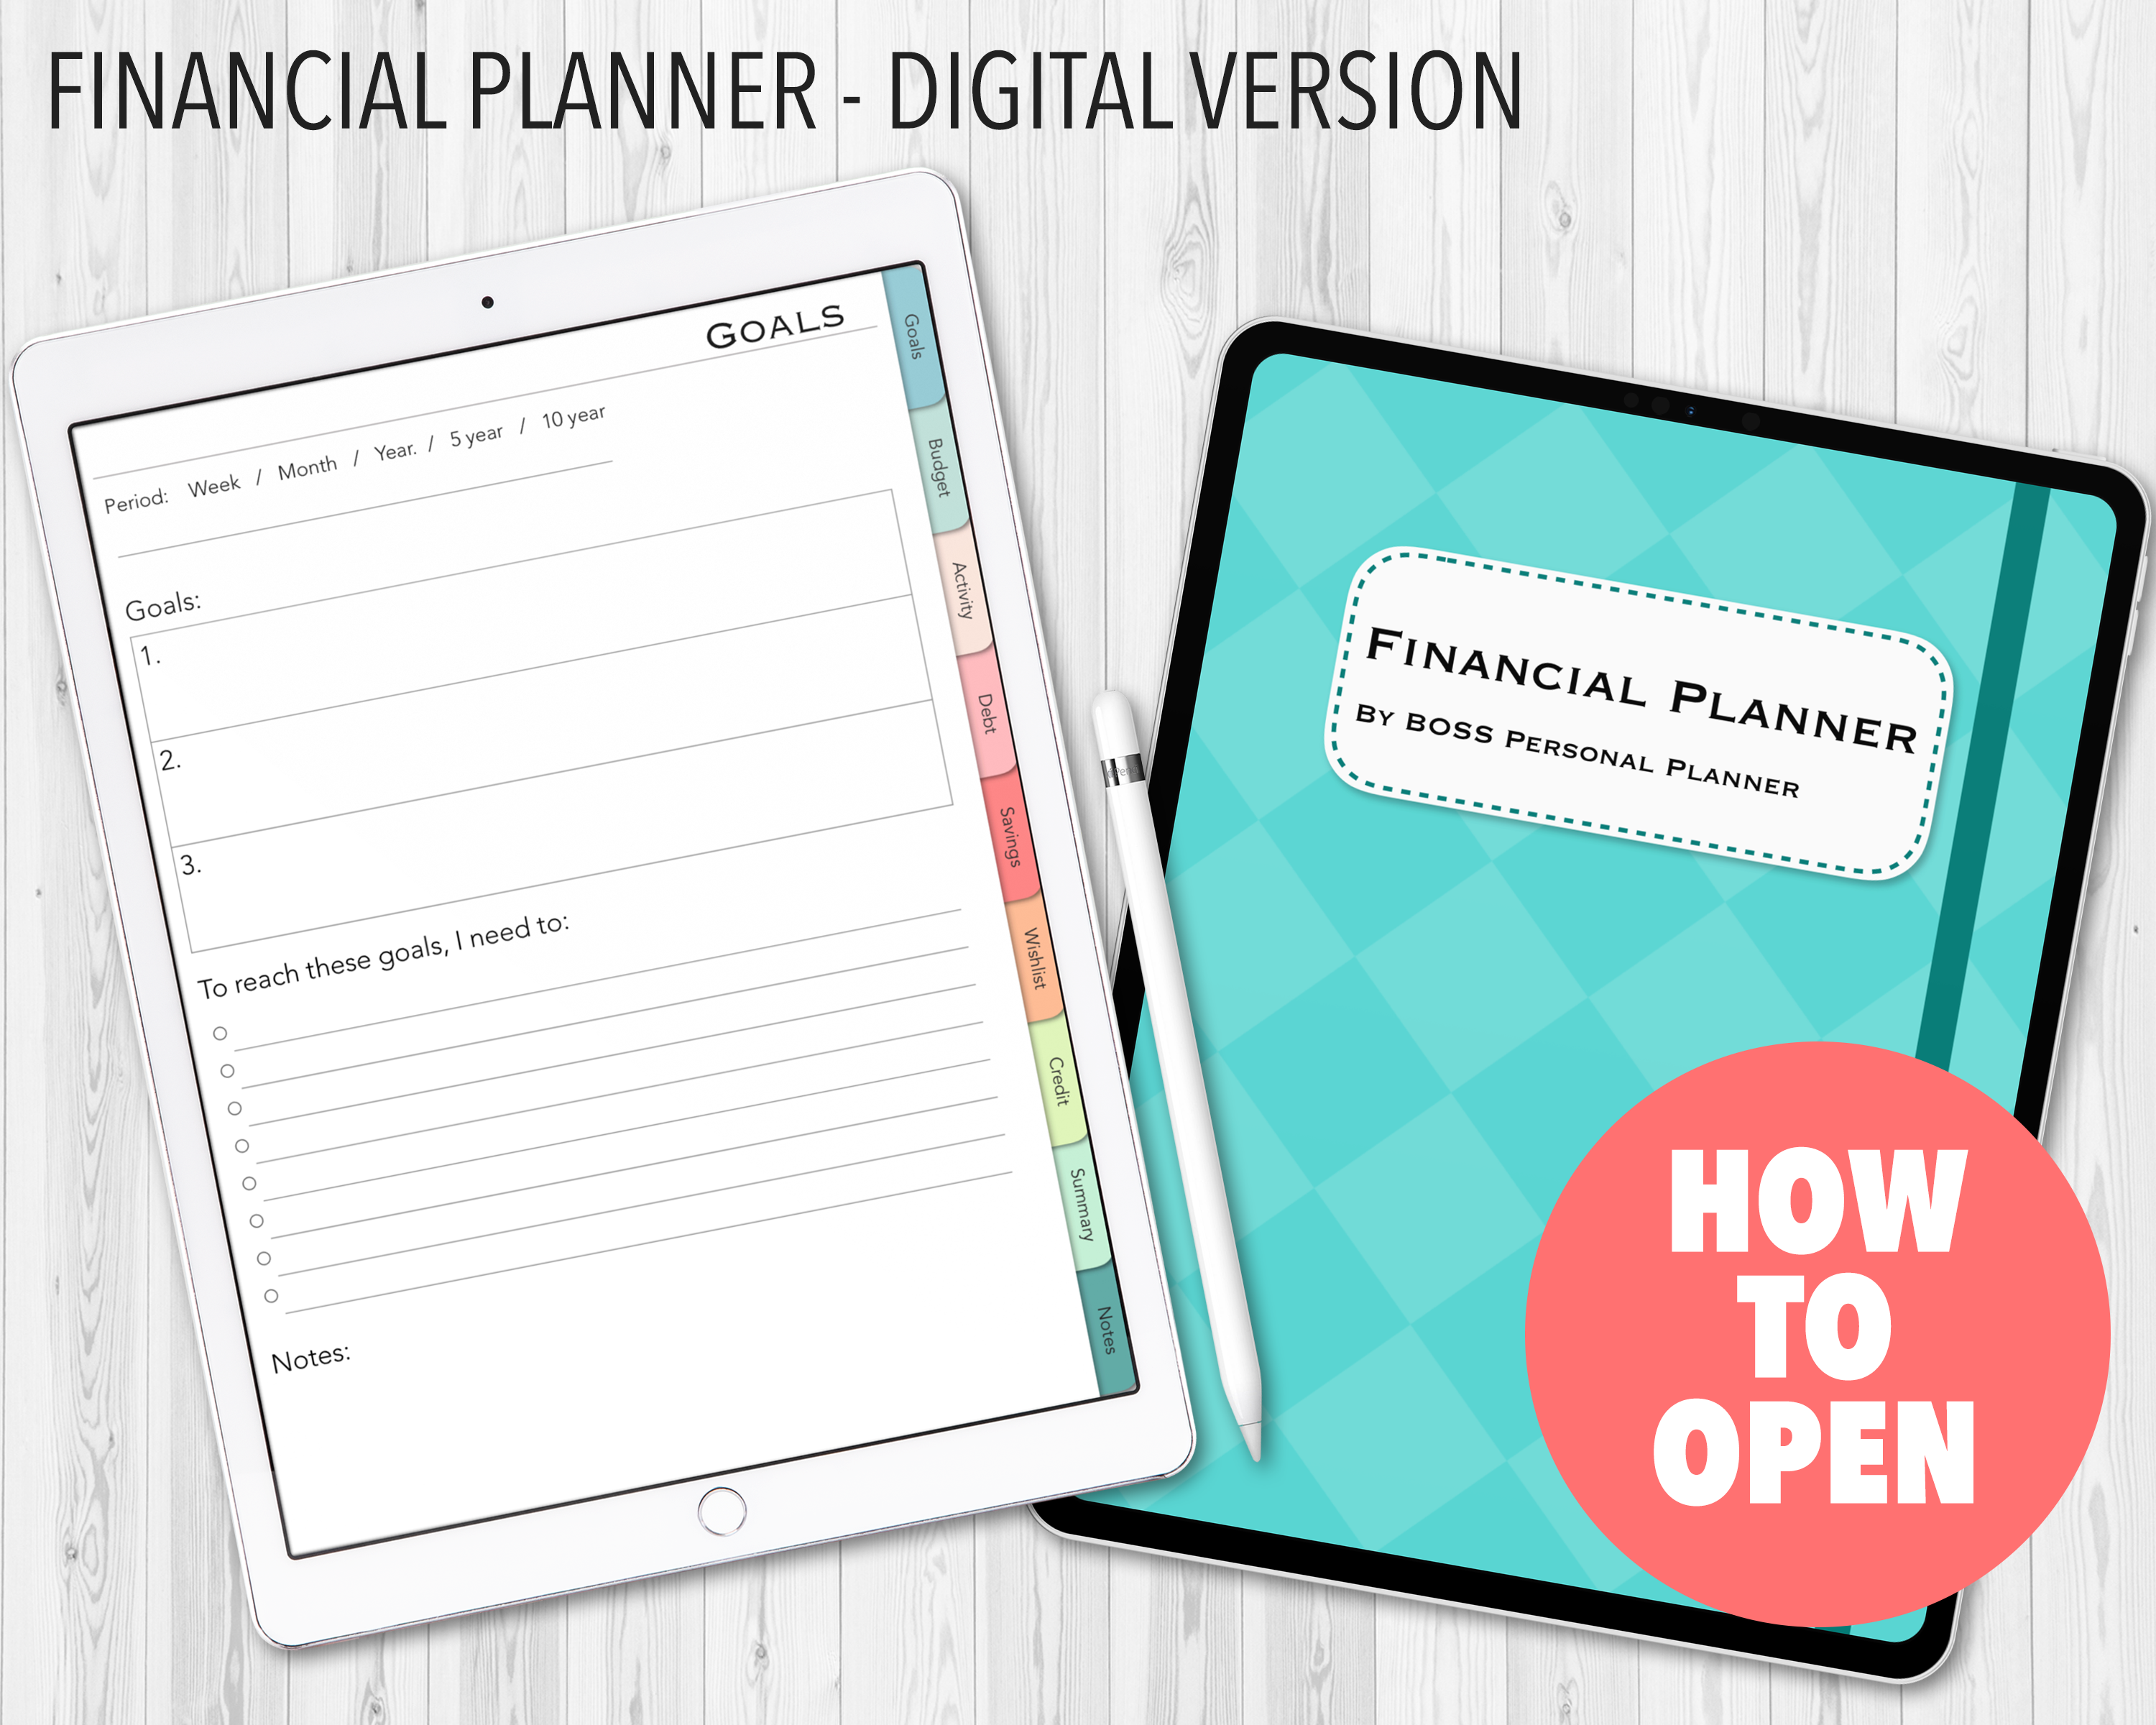 How to open digital financial planner BOSS Personal Planner